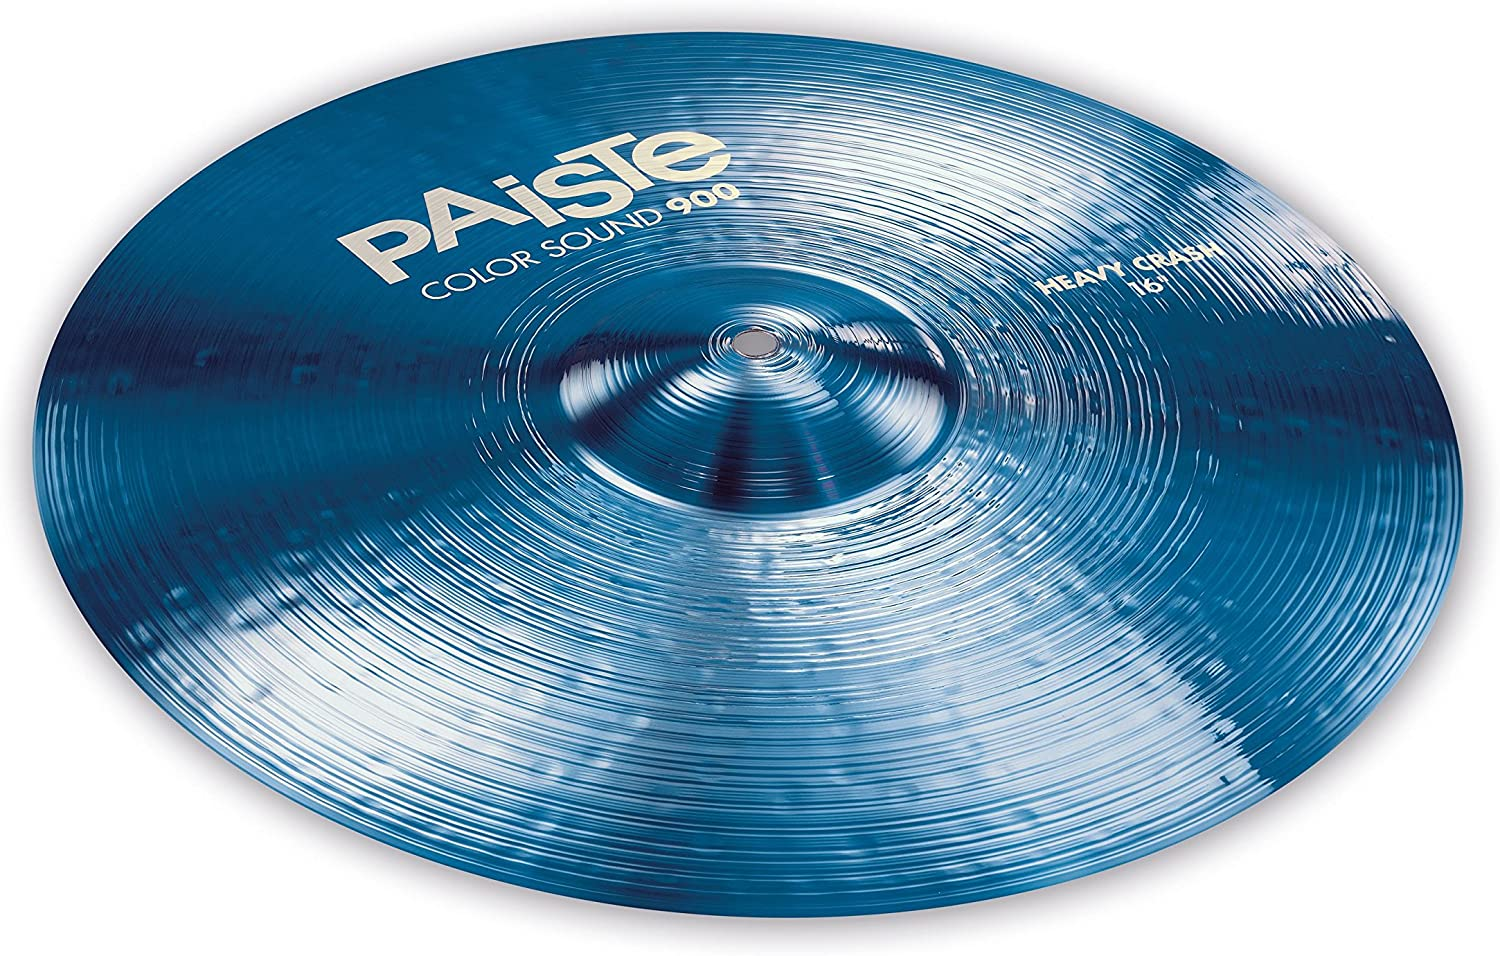 Paiste Colorsound 900 Heavy Crash Mesa Mall 16 in. Blue Discount mail order Cymbal